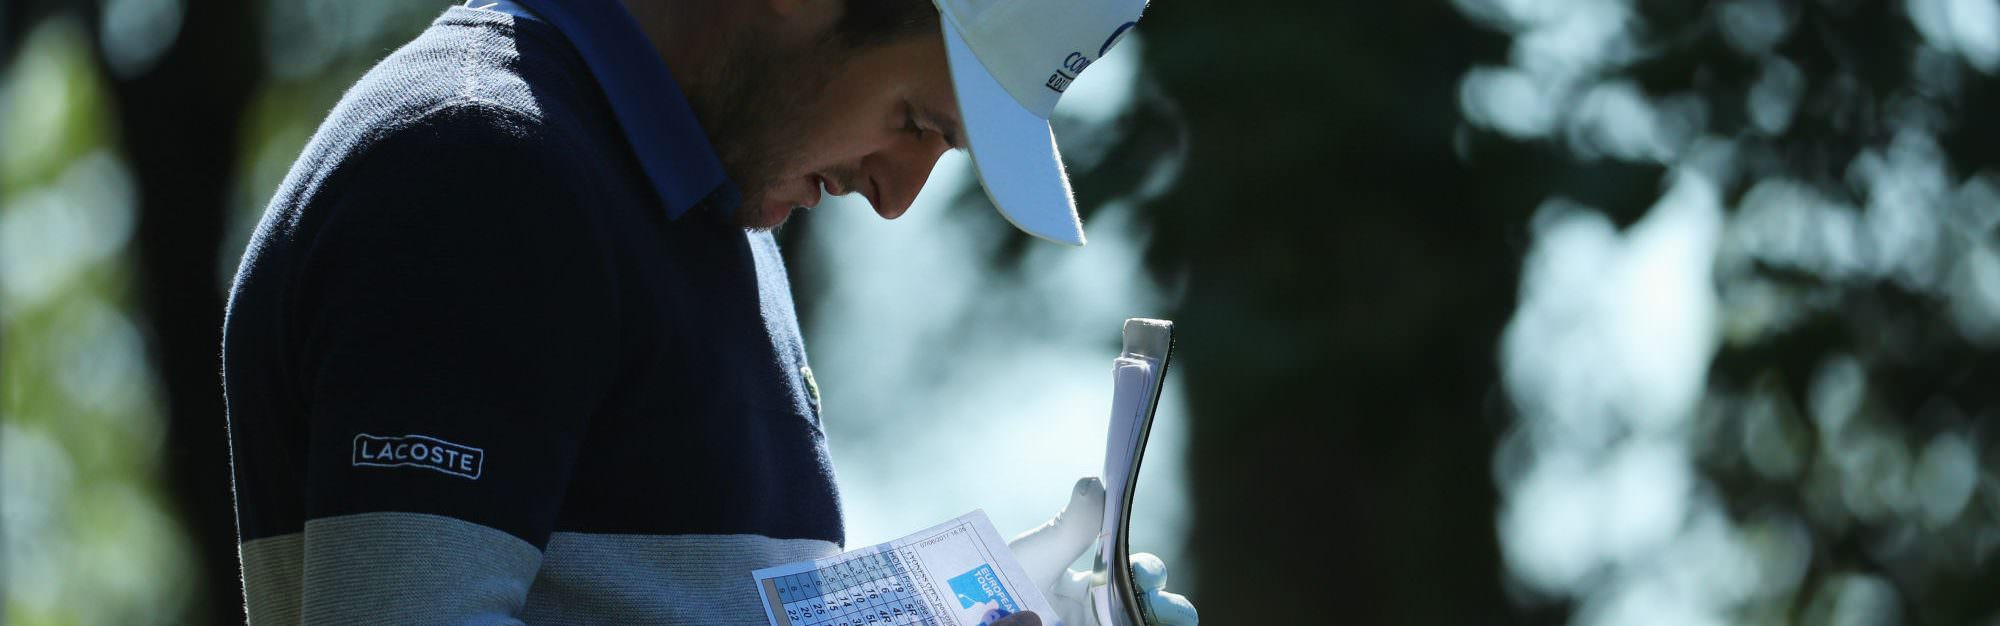 Why social rounds of golf may count towards your new handicap